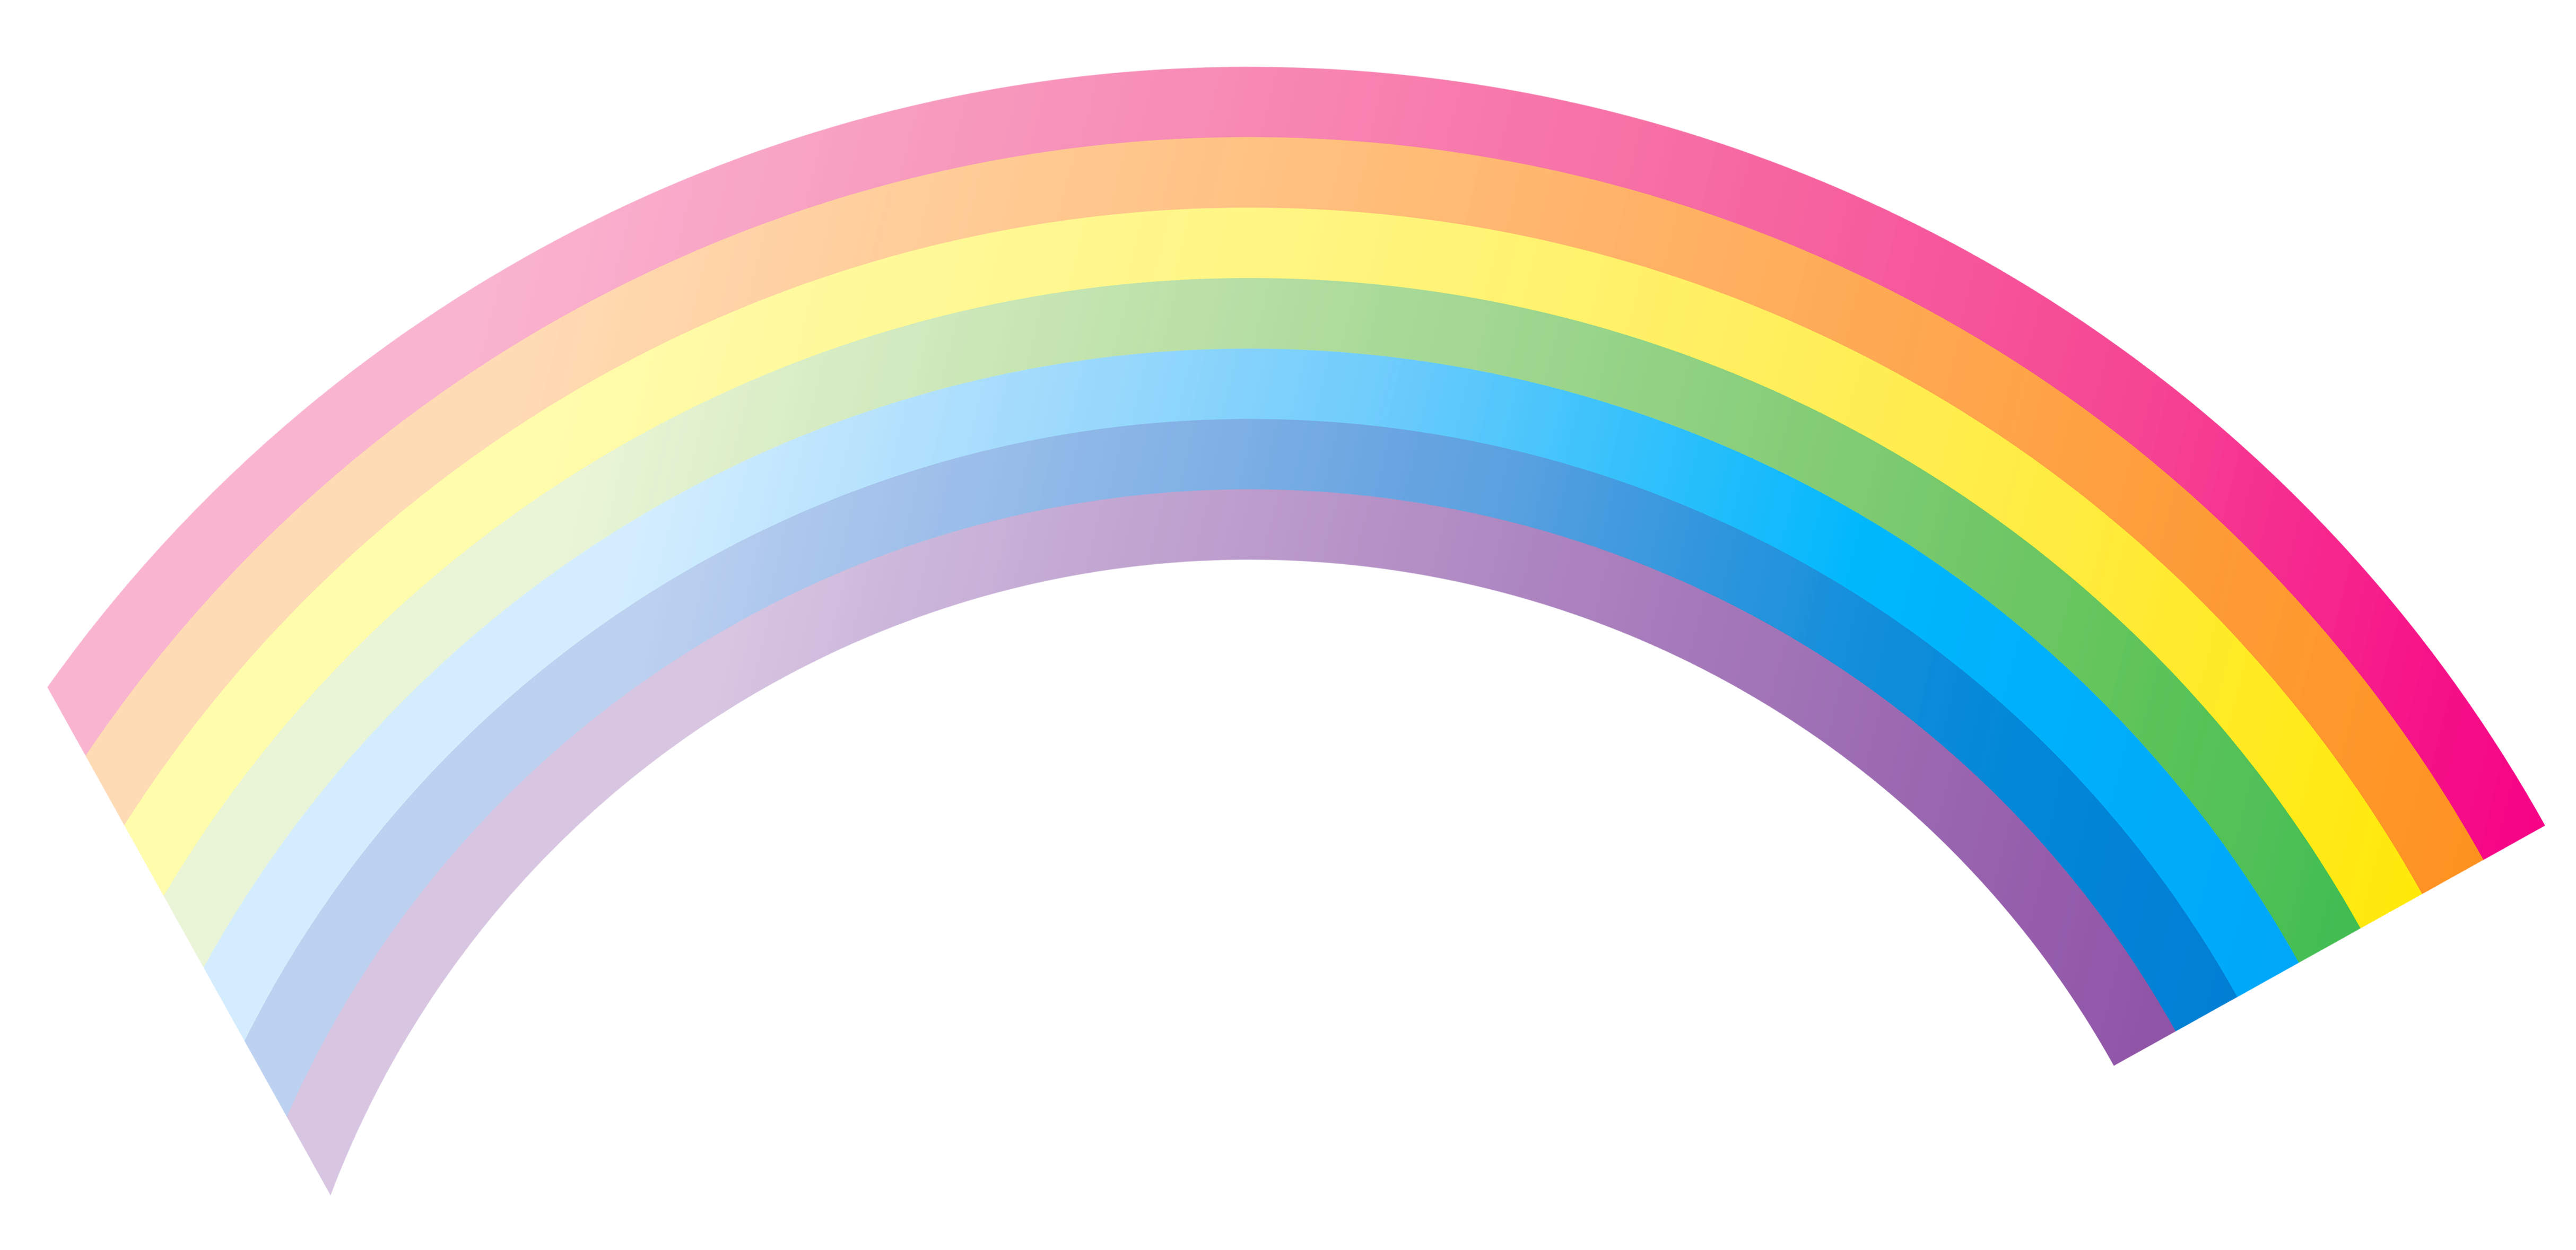 Rainbow clipart easter egg. Png gallery yopriceville high